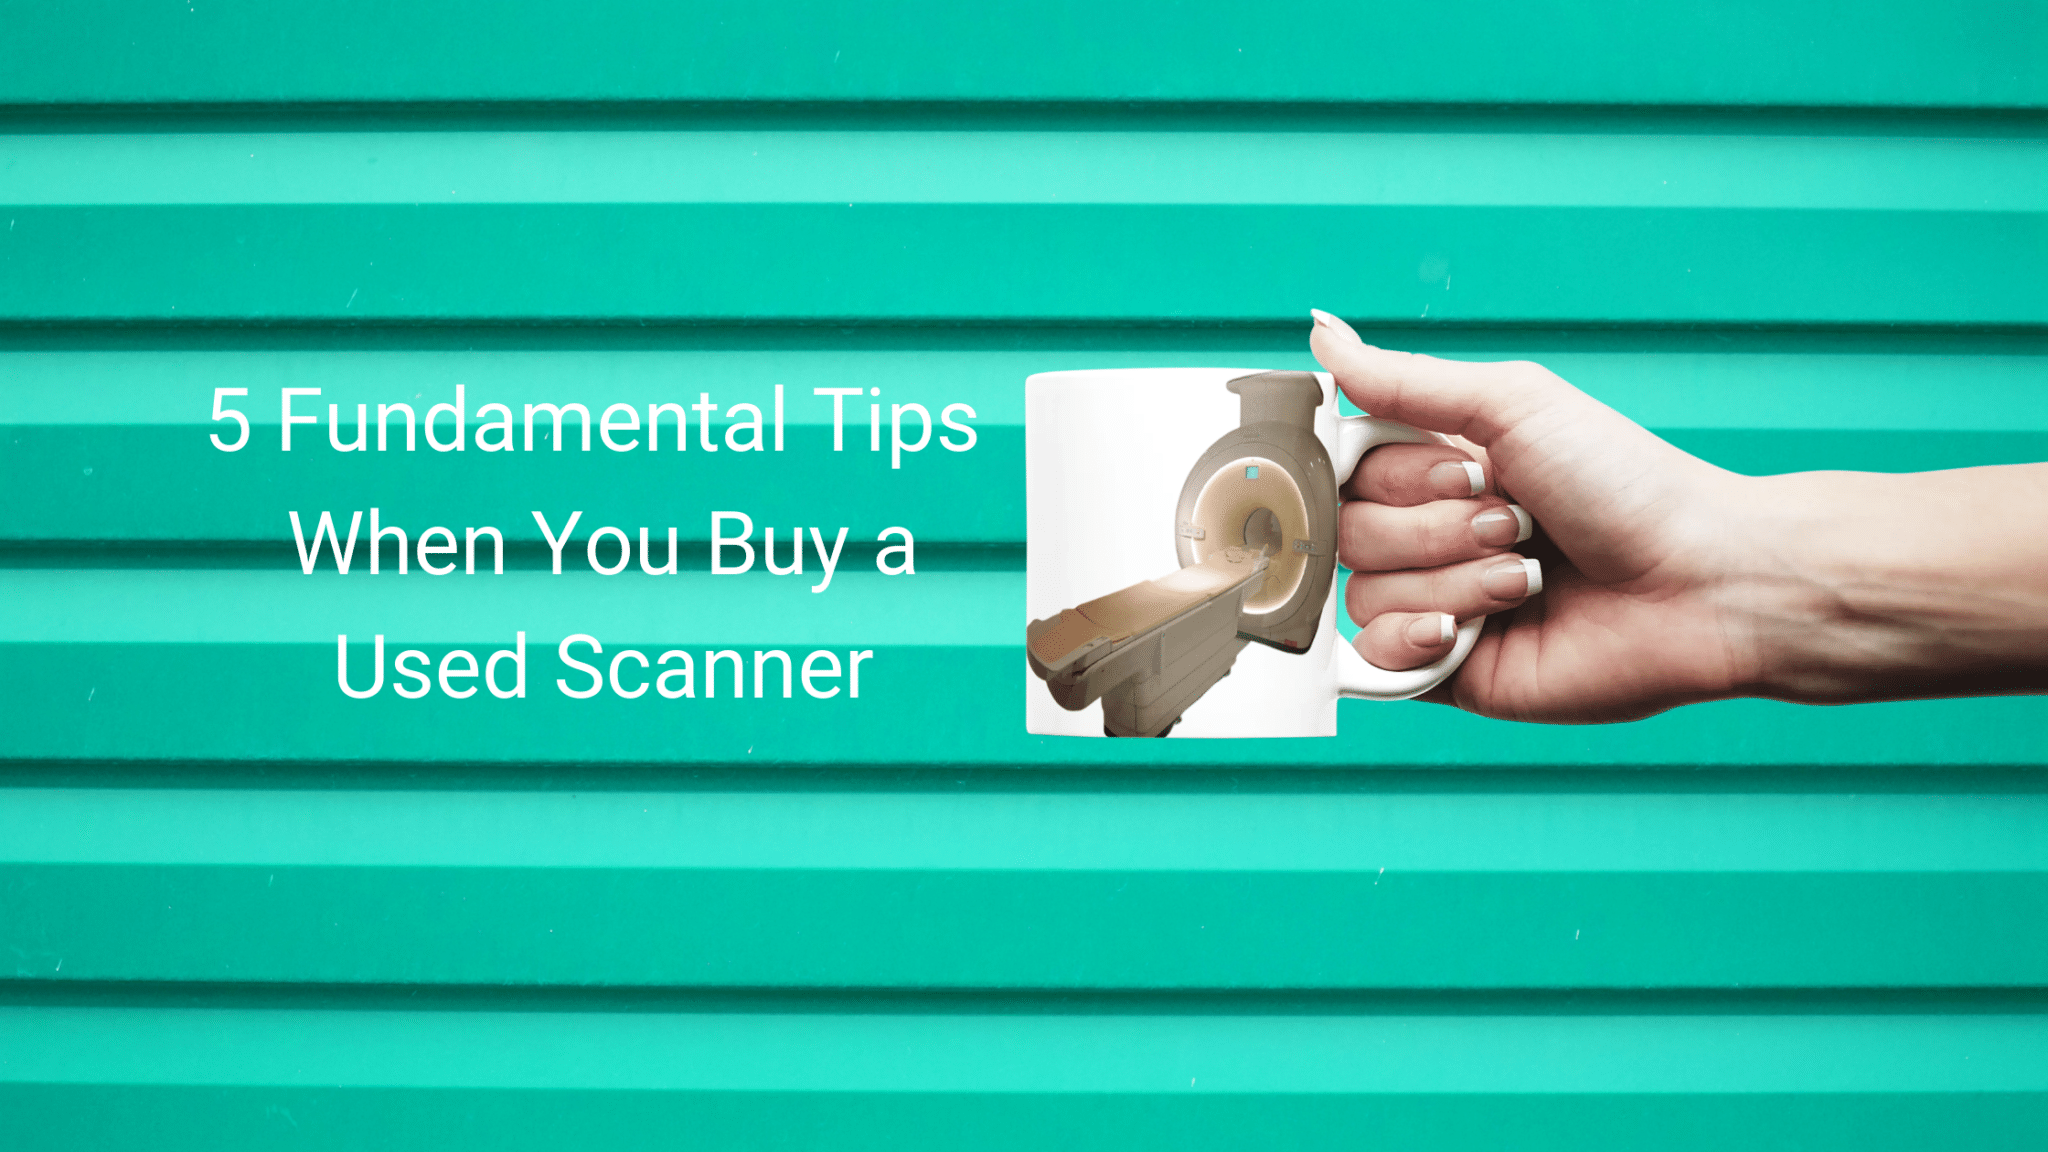 5 Fundamental Tips When You Buy a Used Scanner